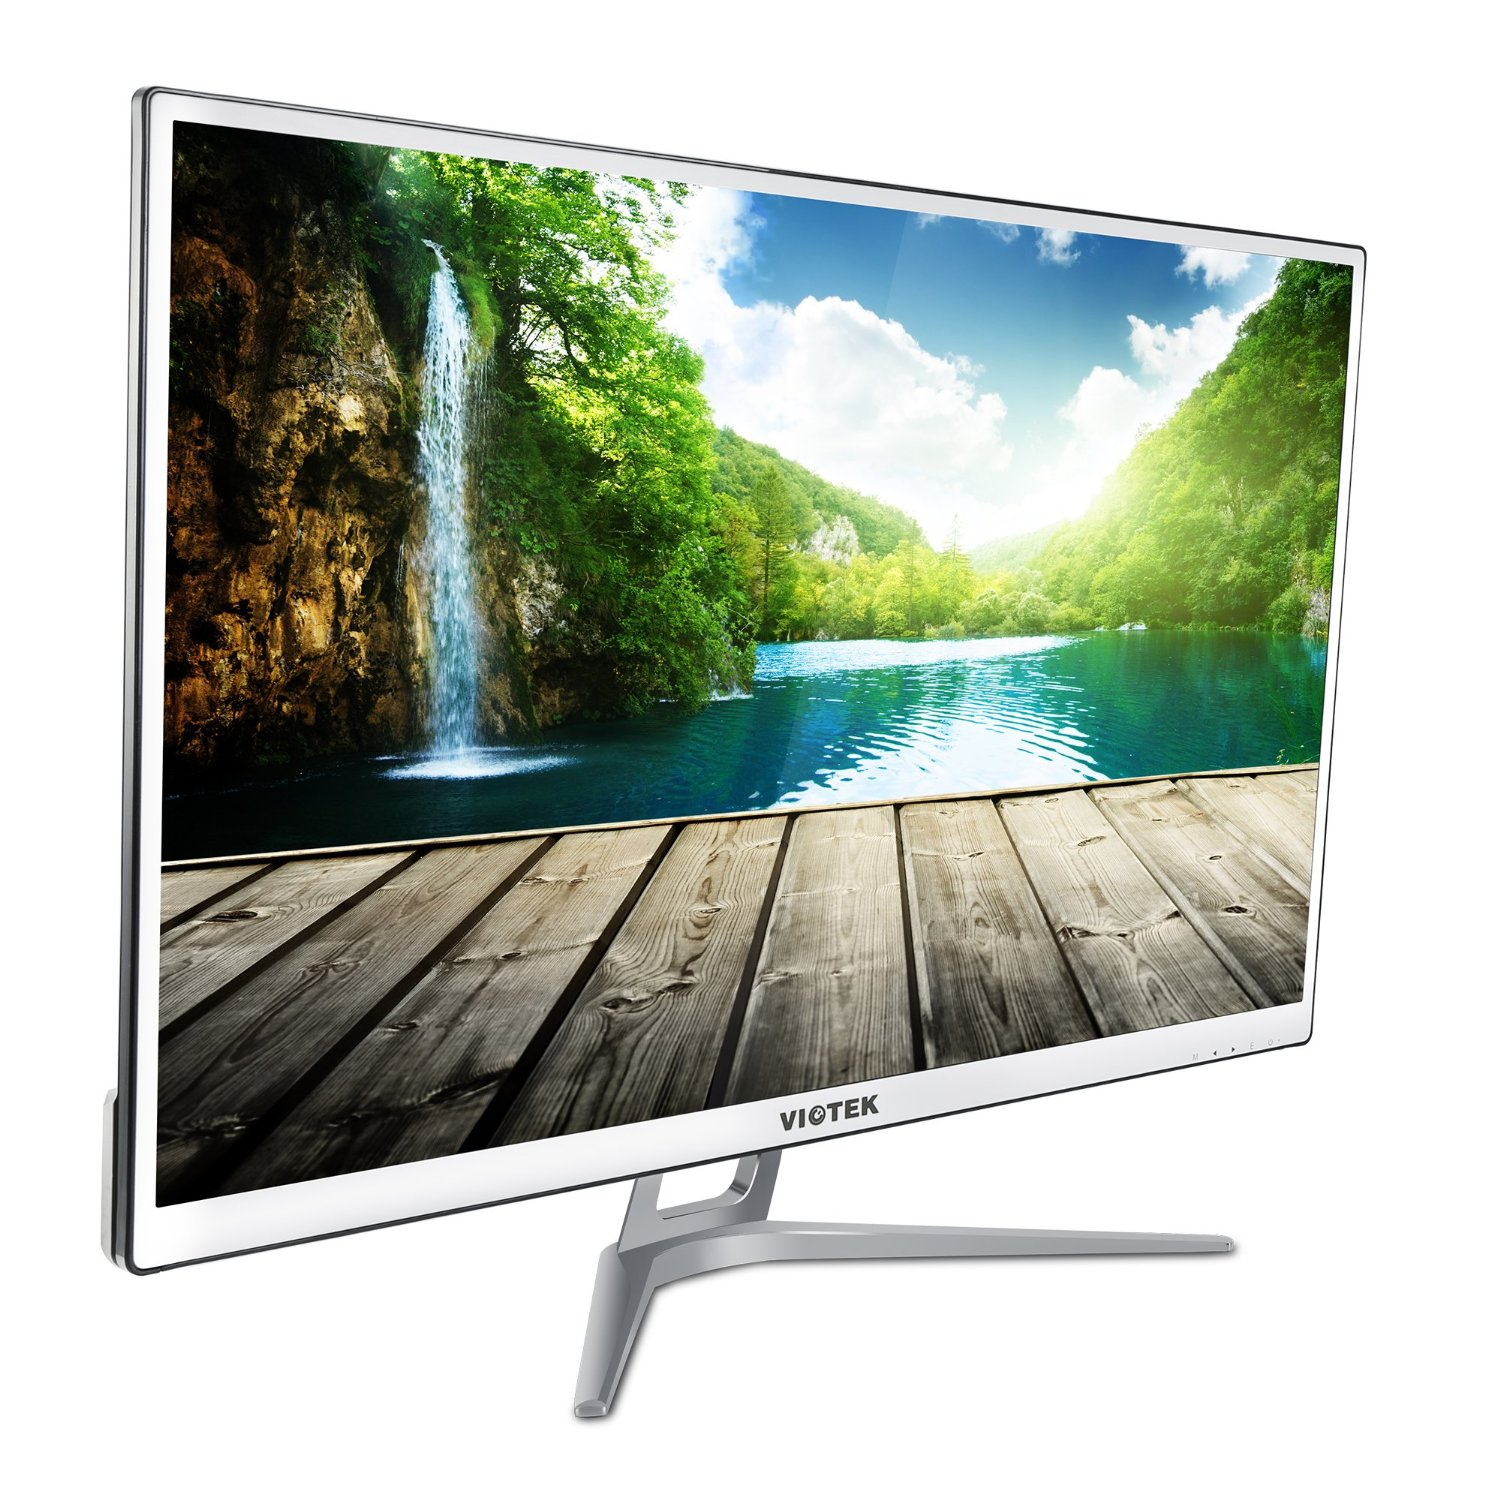 Viotek 32 inch LED Computer Monitor -1920x1080 Full HD, VGA DVI and HDMI, Model H320